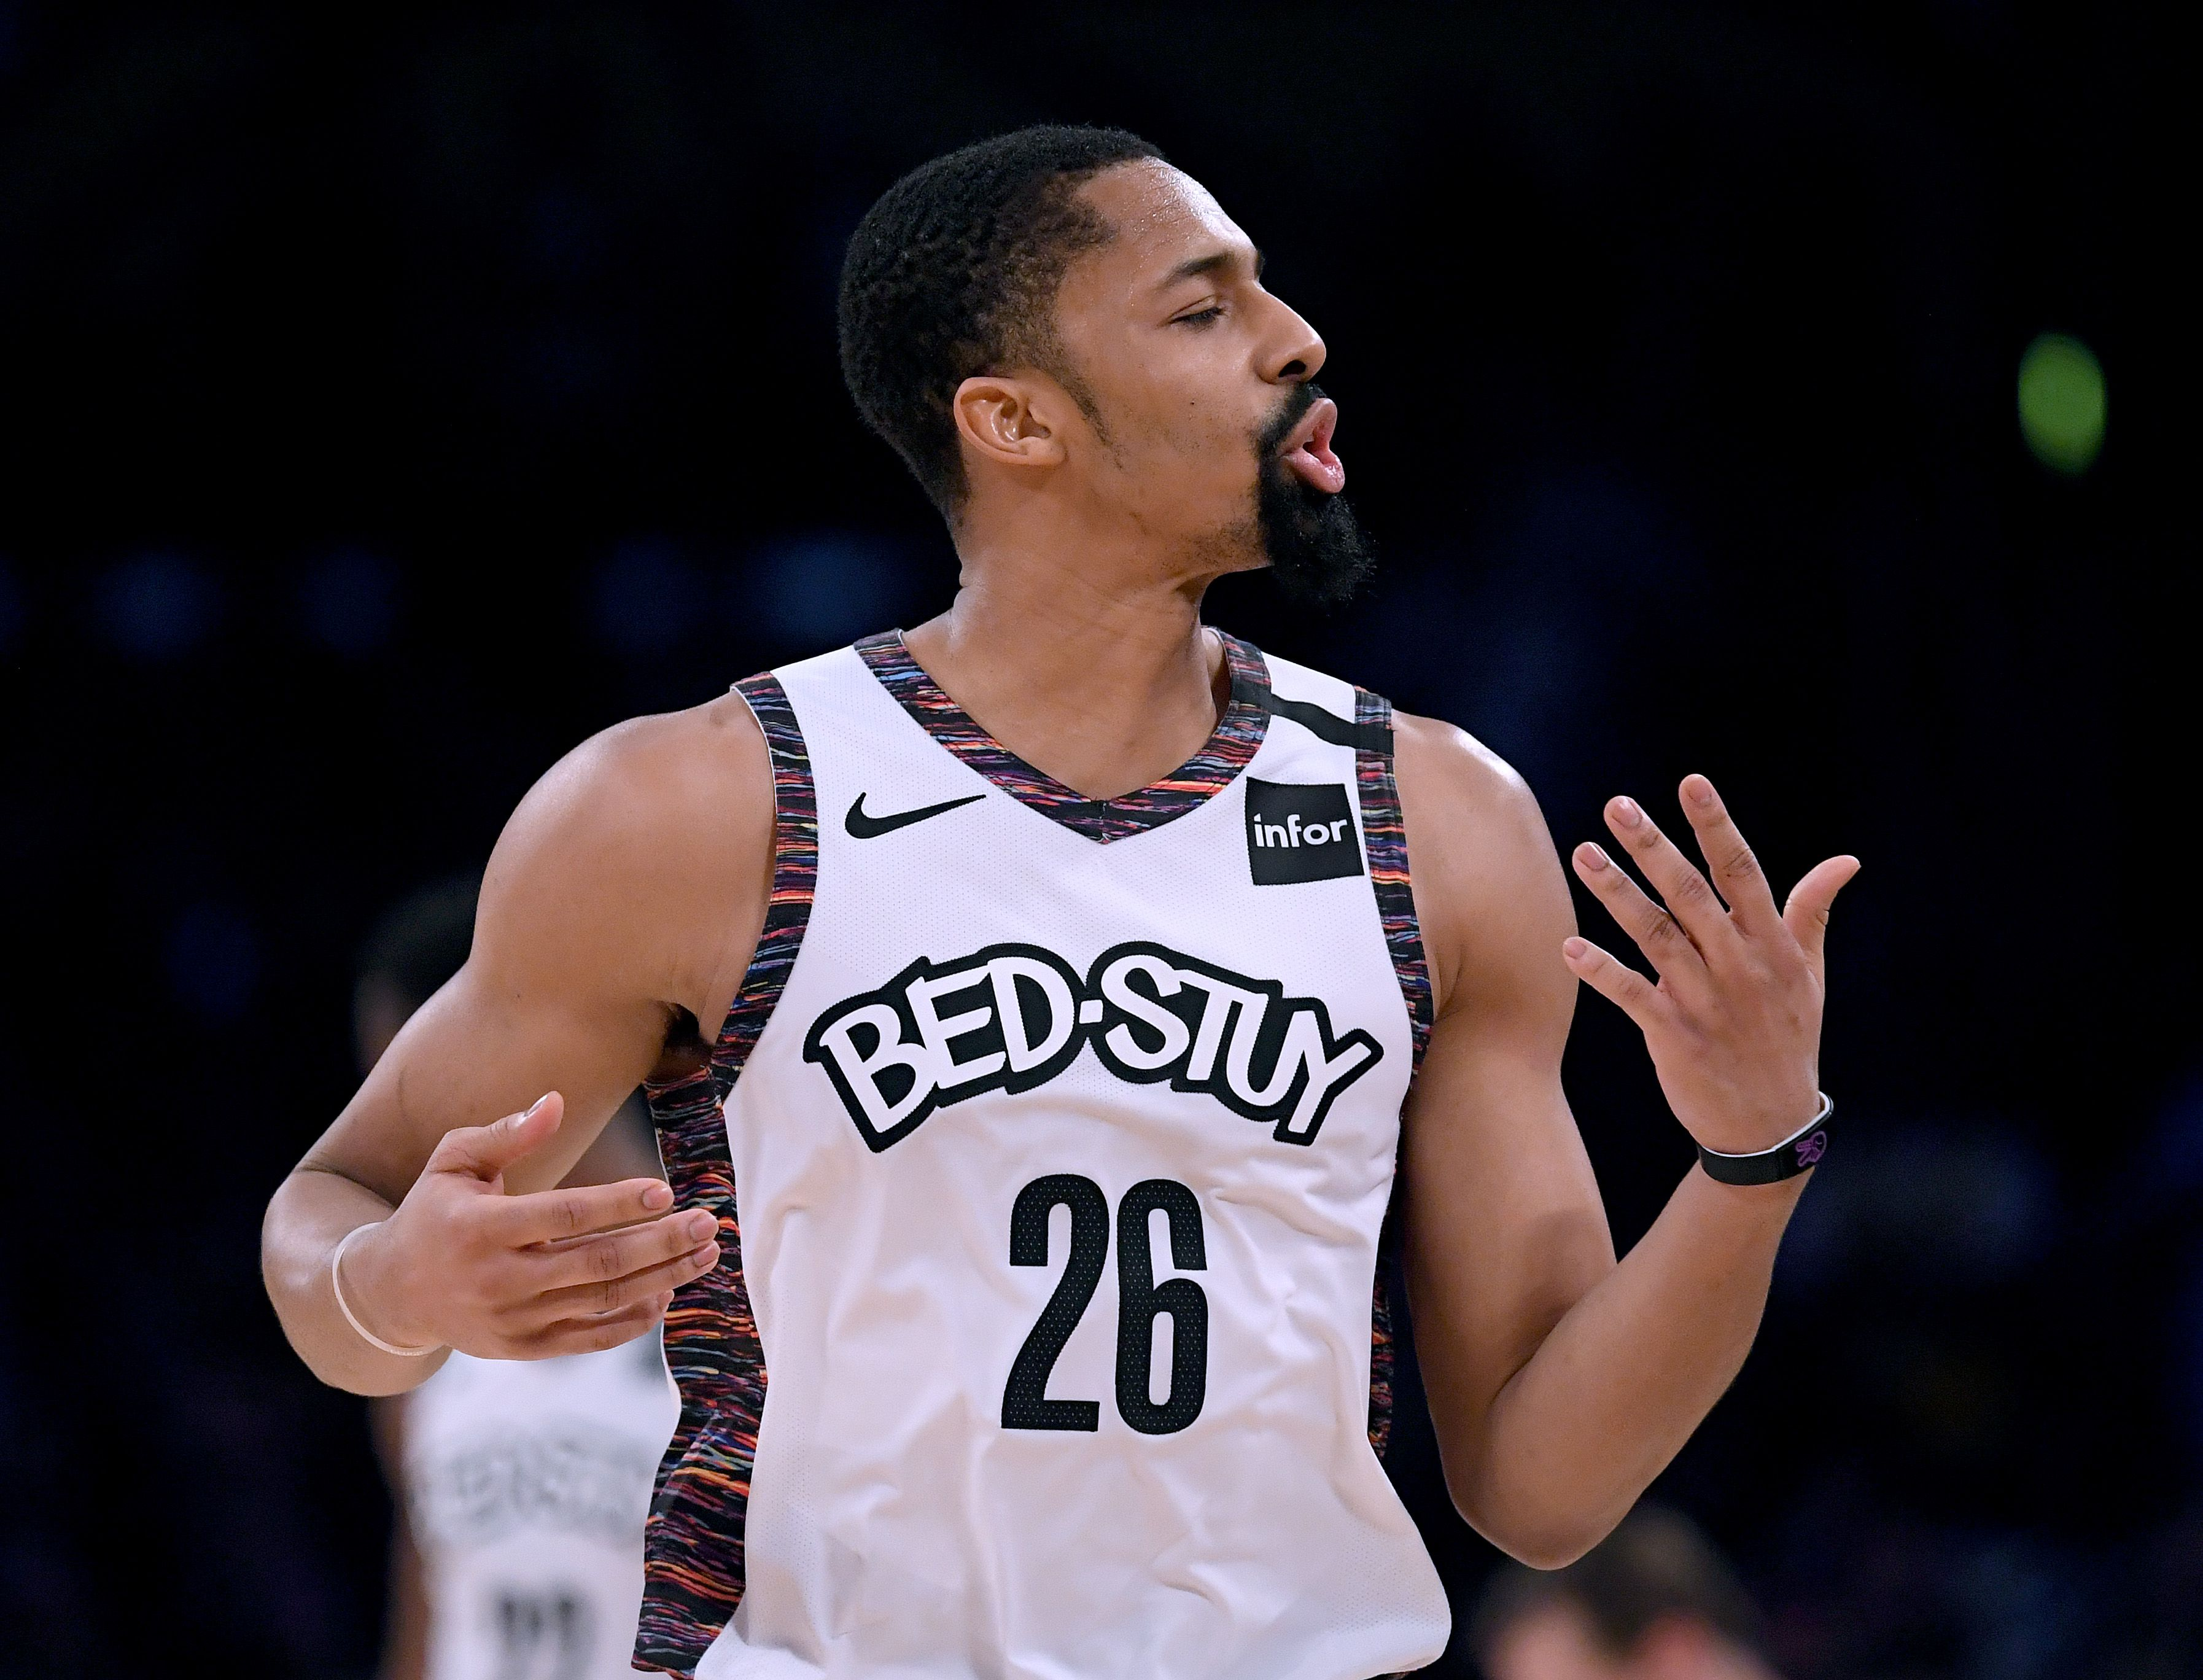 Spencer Dinwiddie complains to the ref